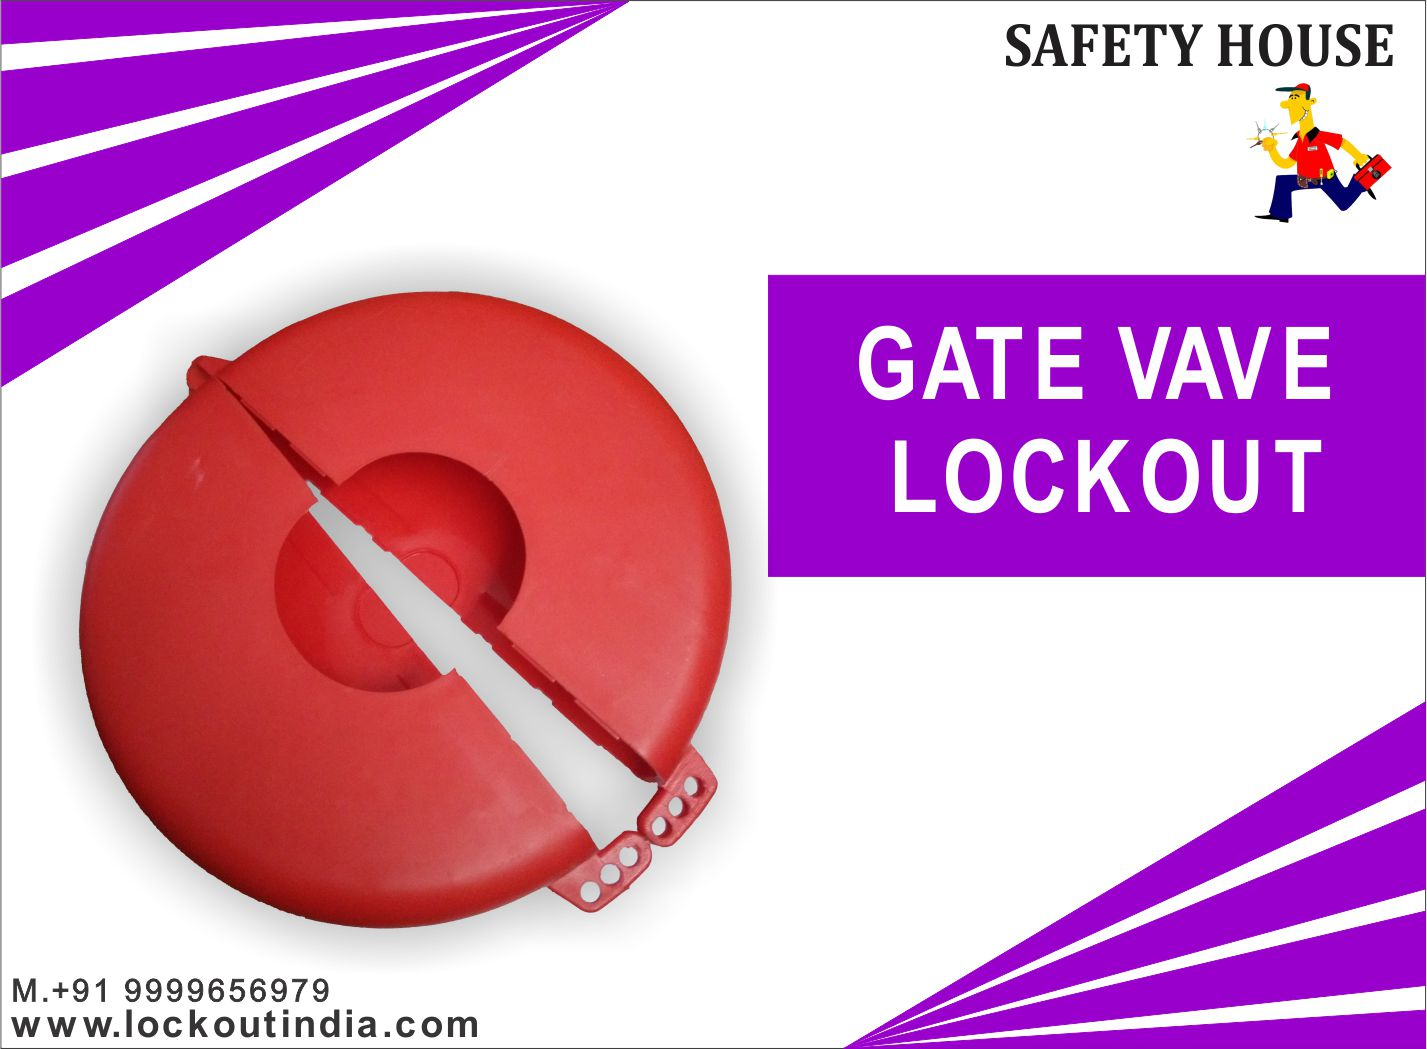 Gate valve  lockout  devices manufacture in Delhi India .we are supplying different types of LOTO product like. universal valve lockout, handle lockout, cable lockout, lockout padlock, snap on breaker lockout, lockout tagout, mcb lockout, pneumatic lockout etc.